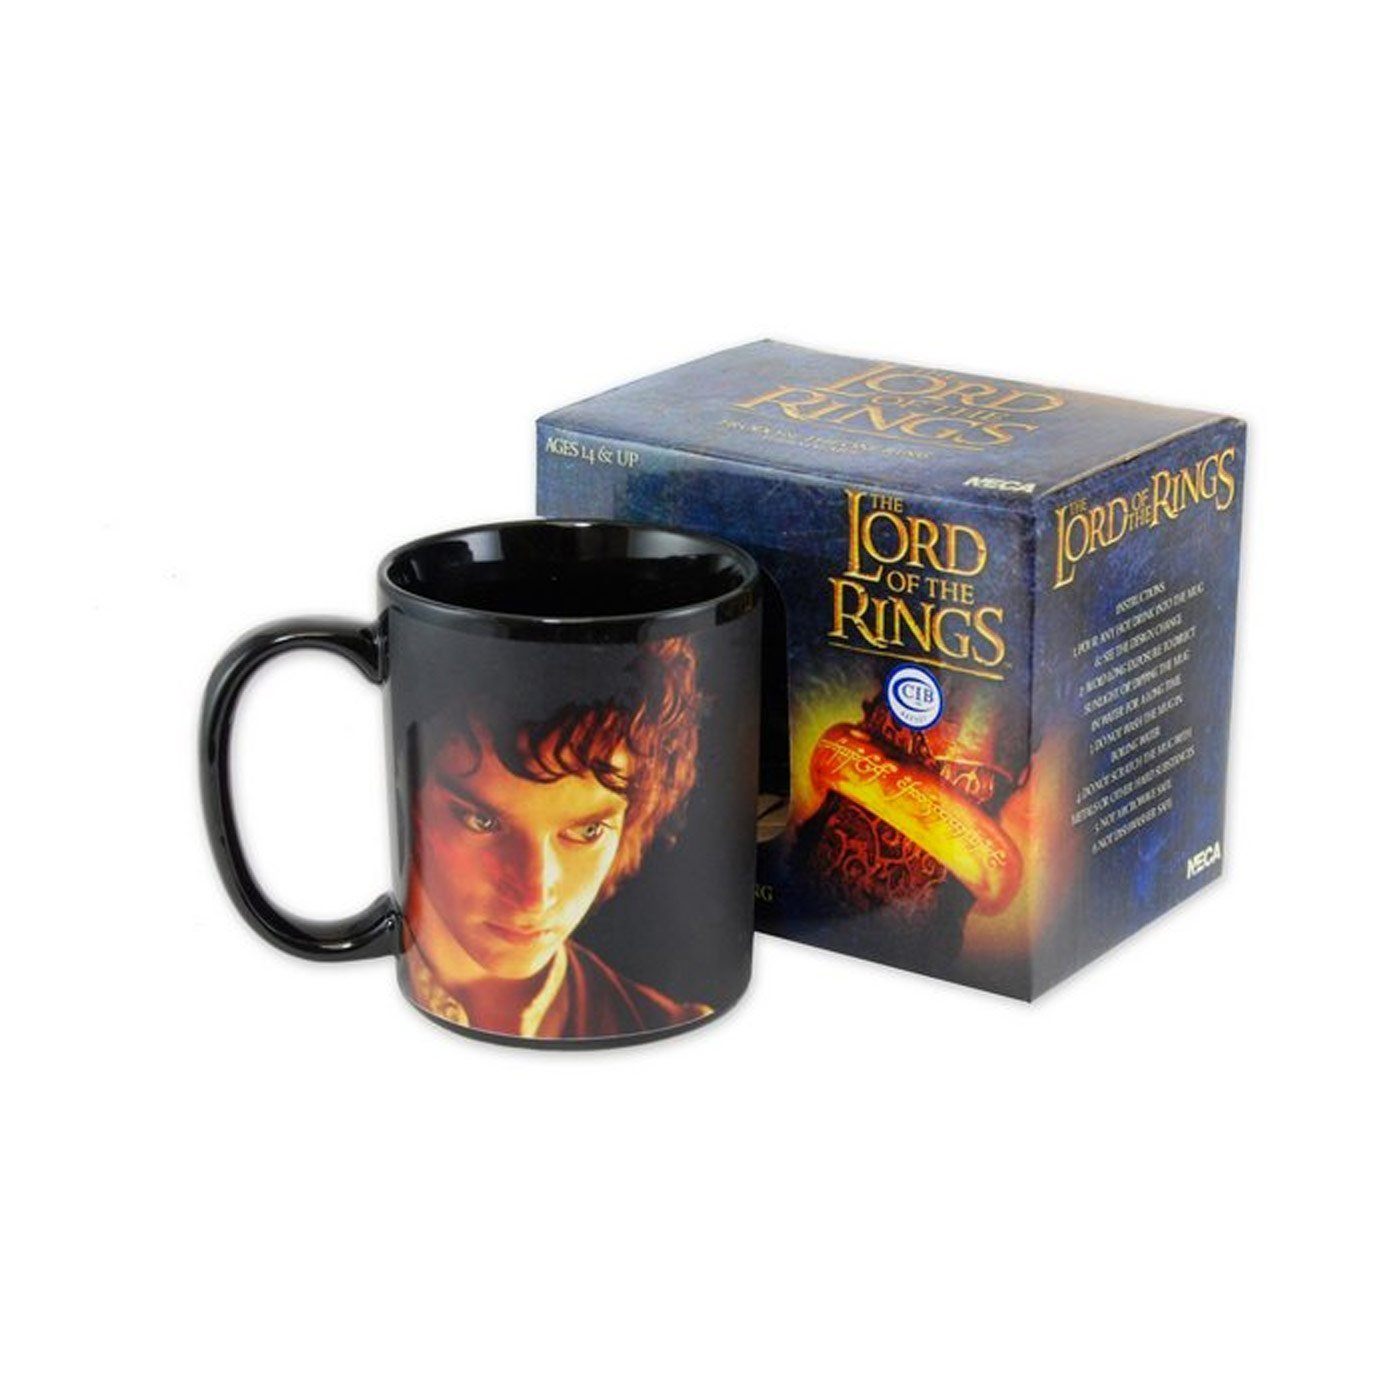 Lord of the rings thermal mug - geeky gift guide